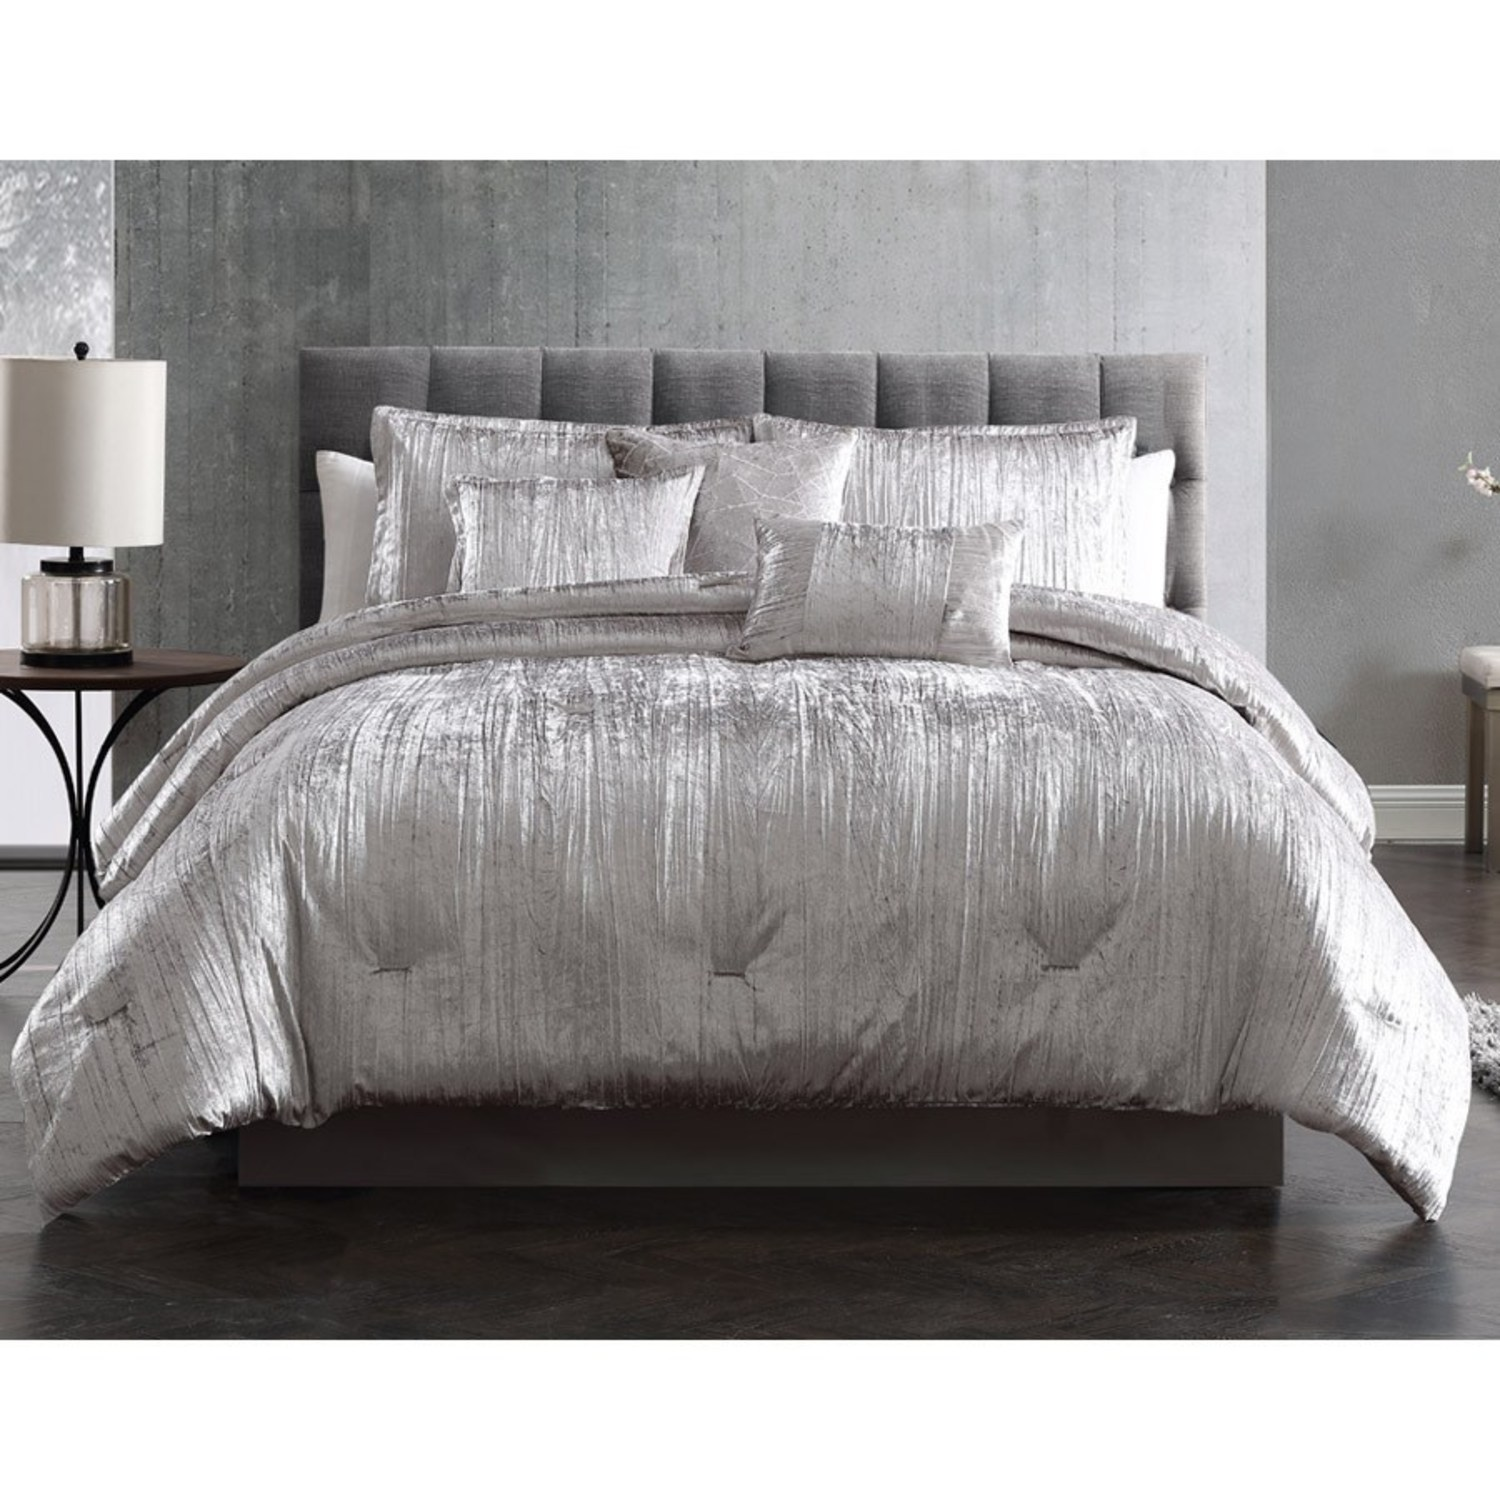 Turin Silver by Riverbrook Home Bedding